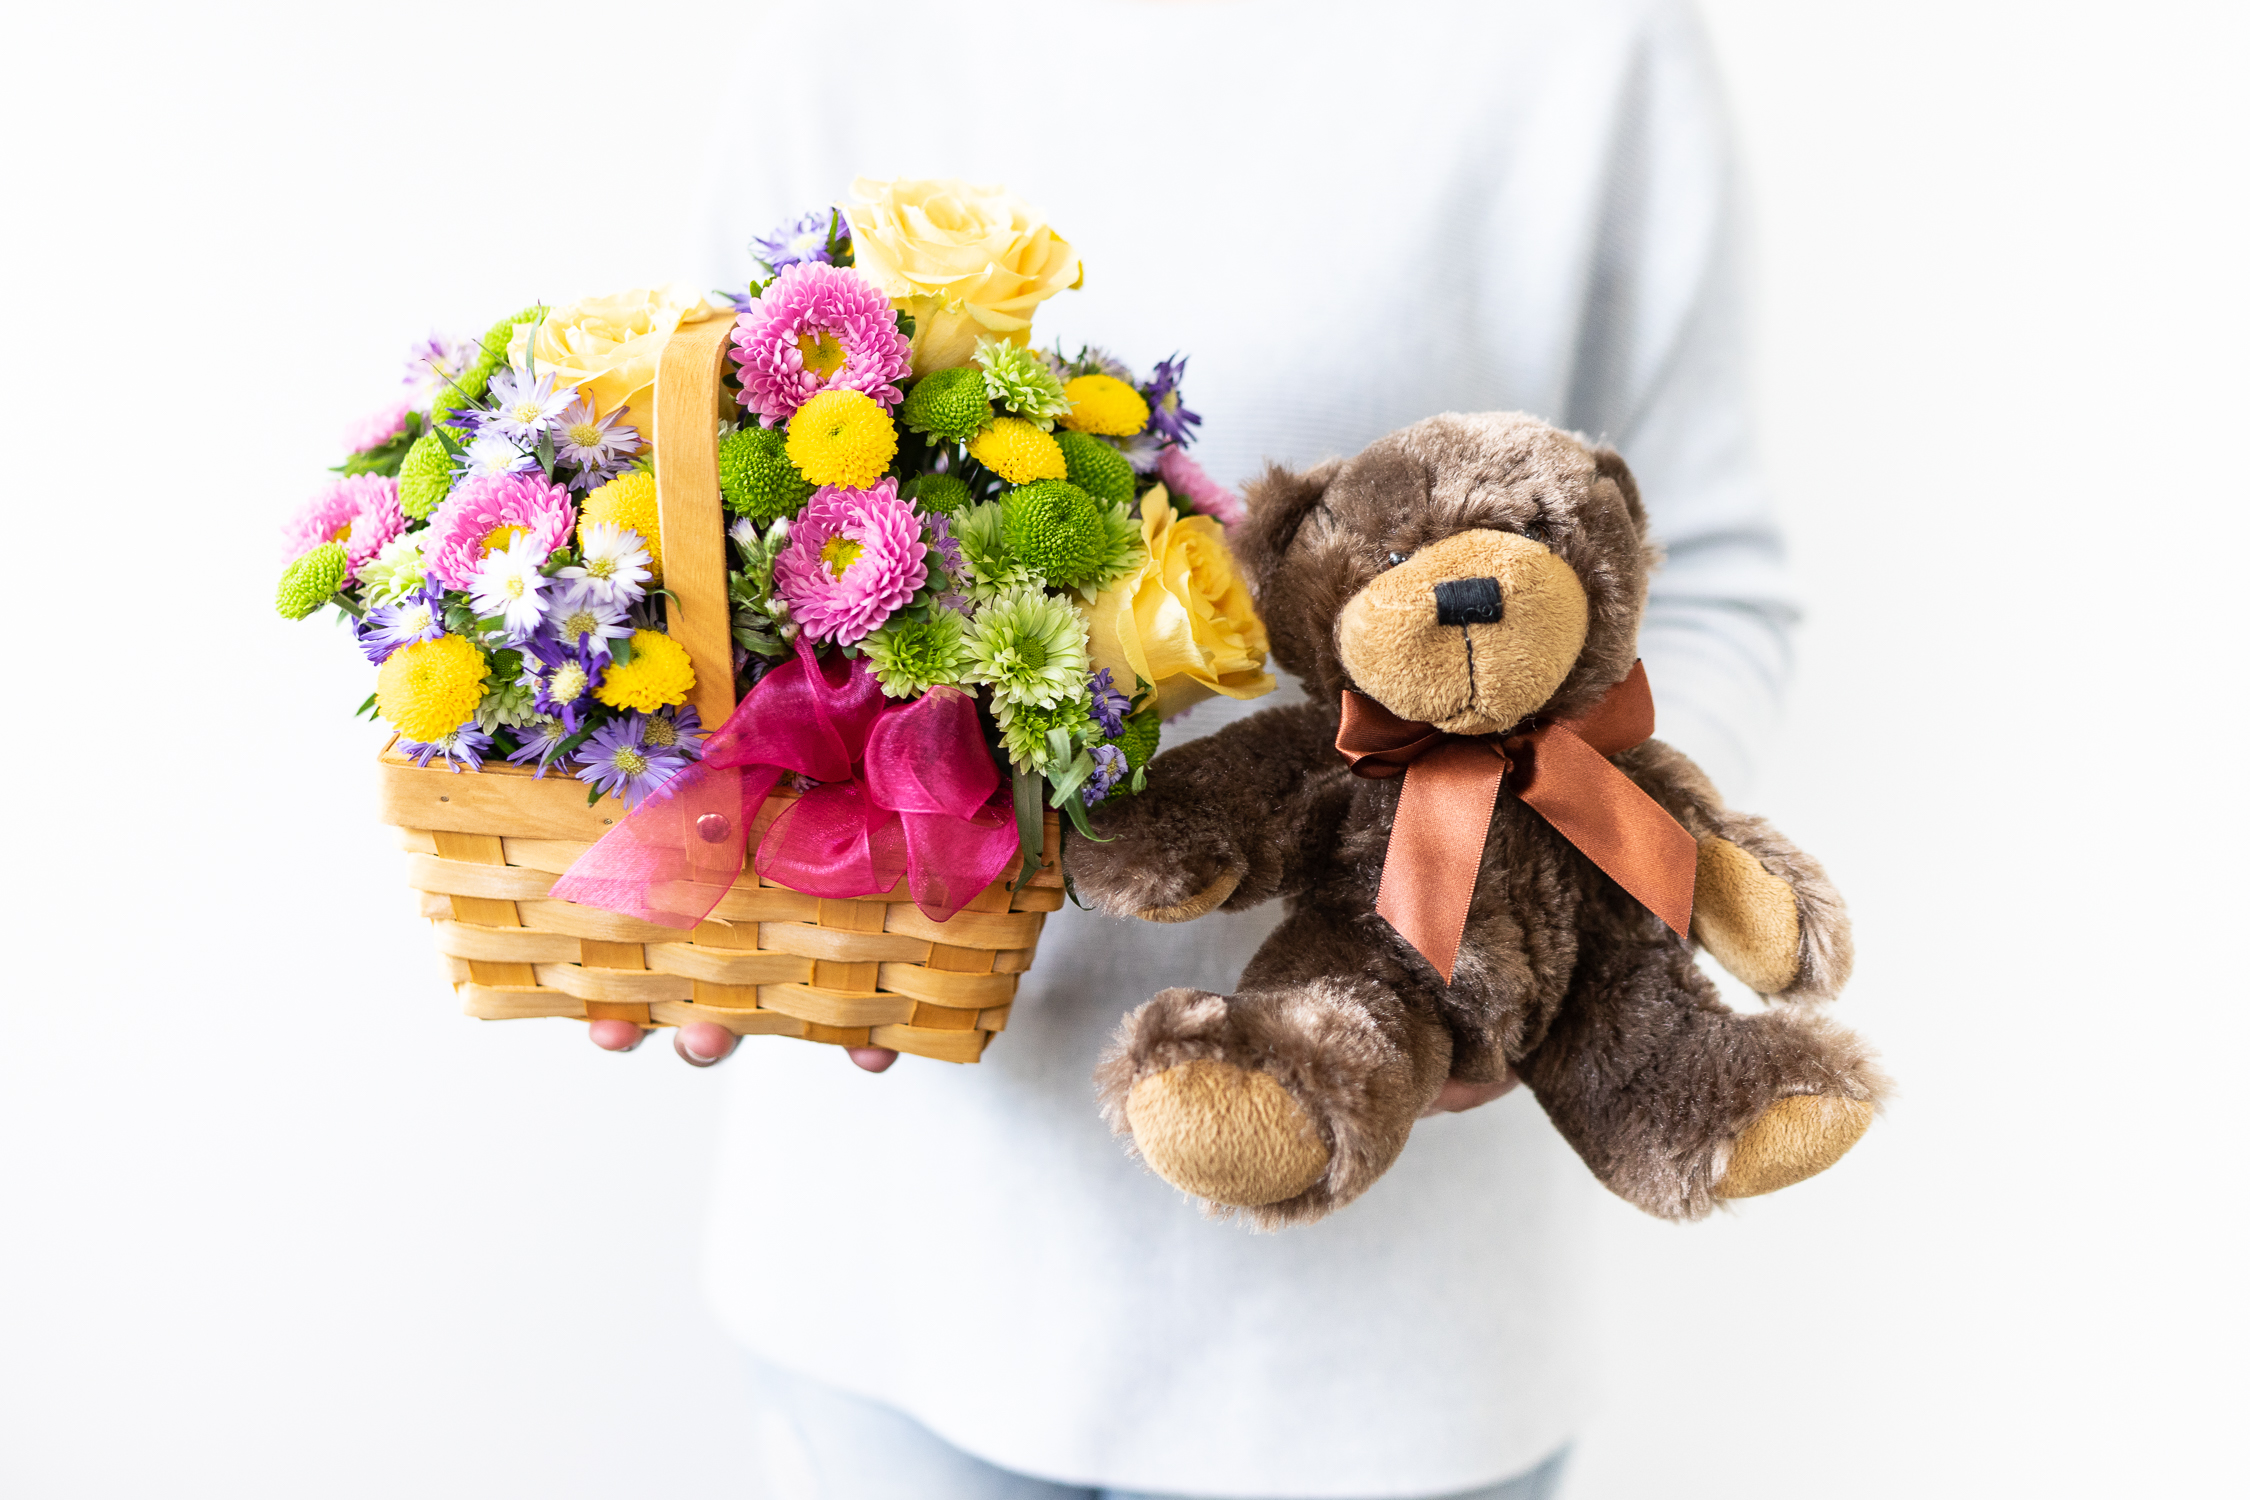 What are appropriate flowers to send to a kid?